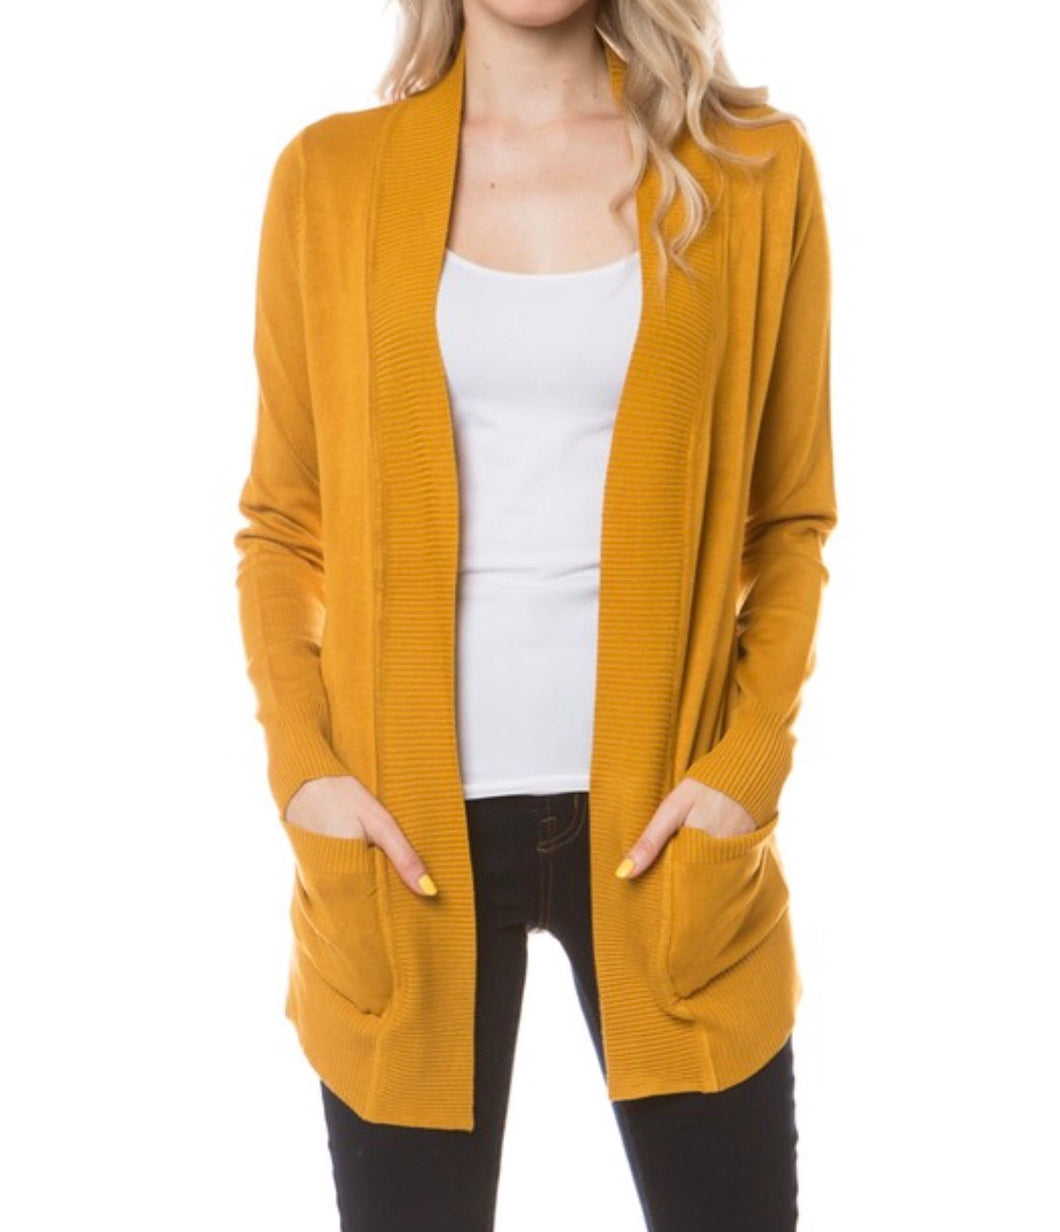 The Perfect Fall Cardigan!